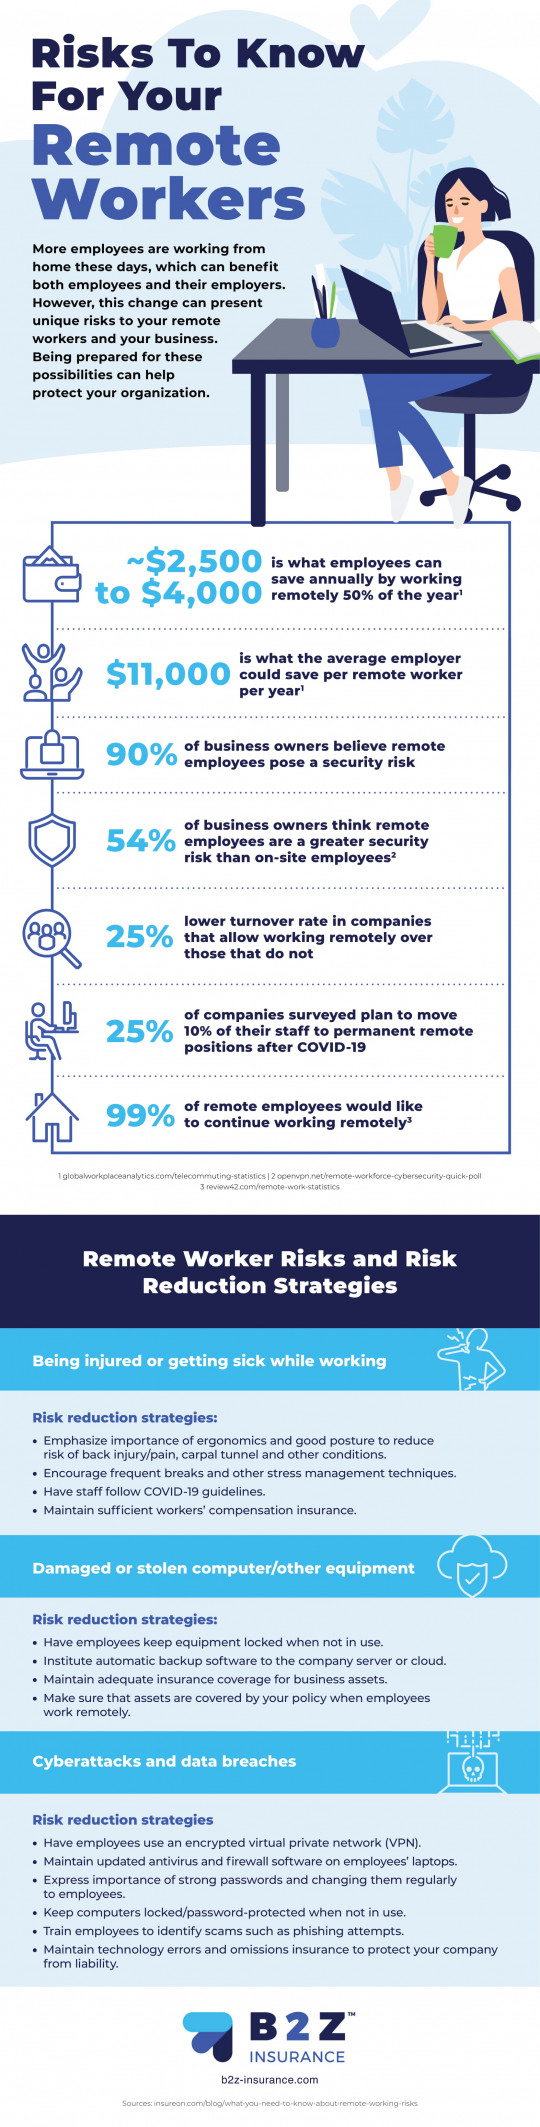 Risks To Know For Your Remote Workers